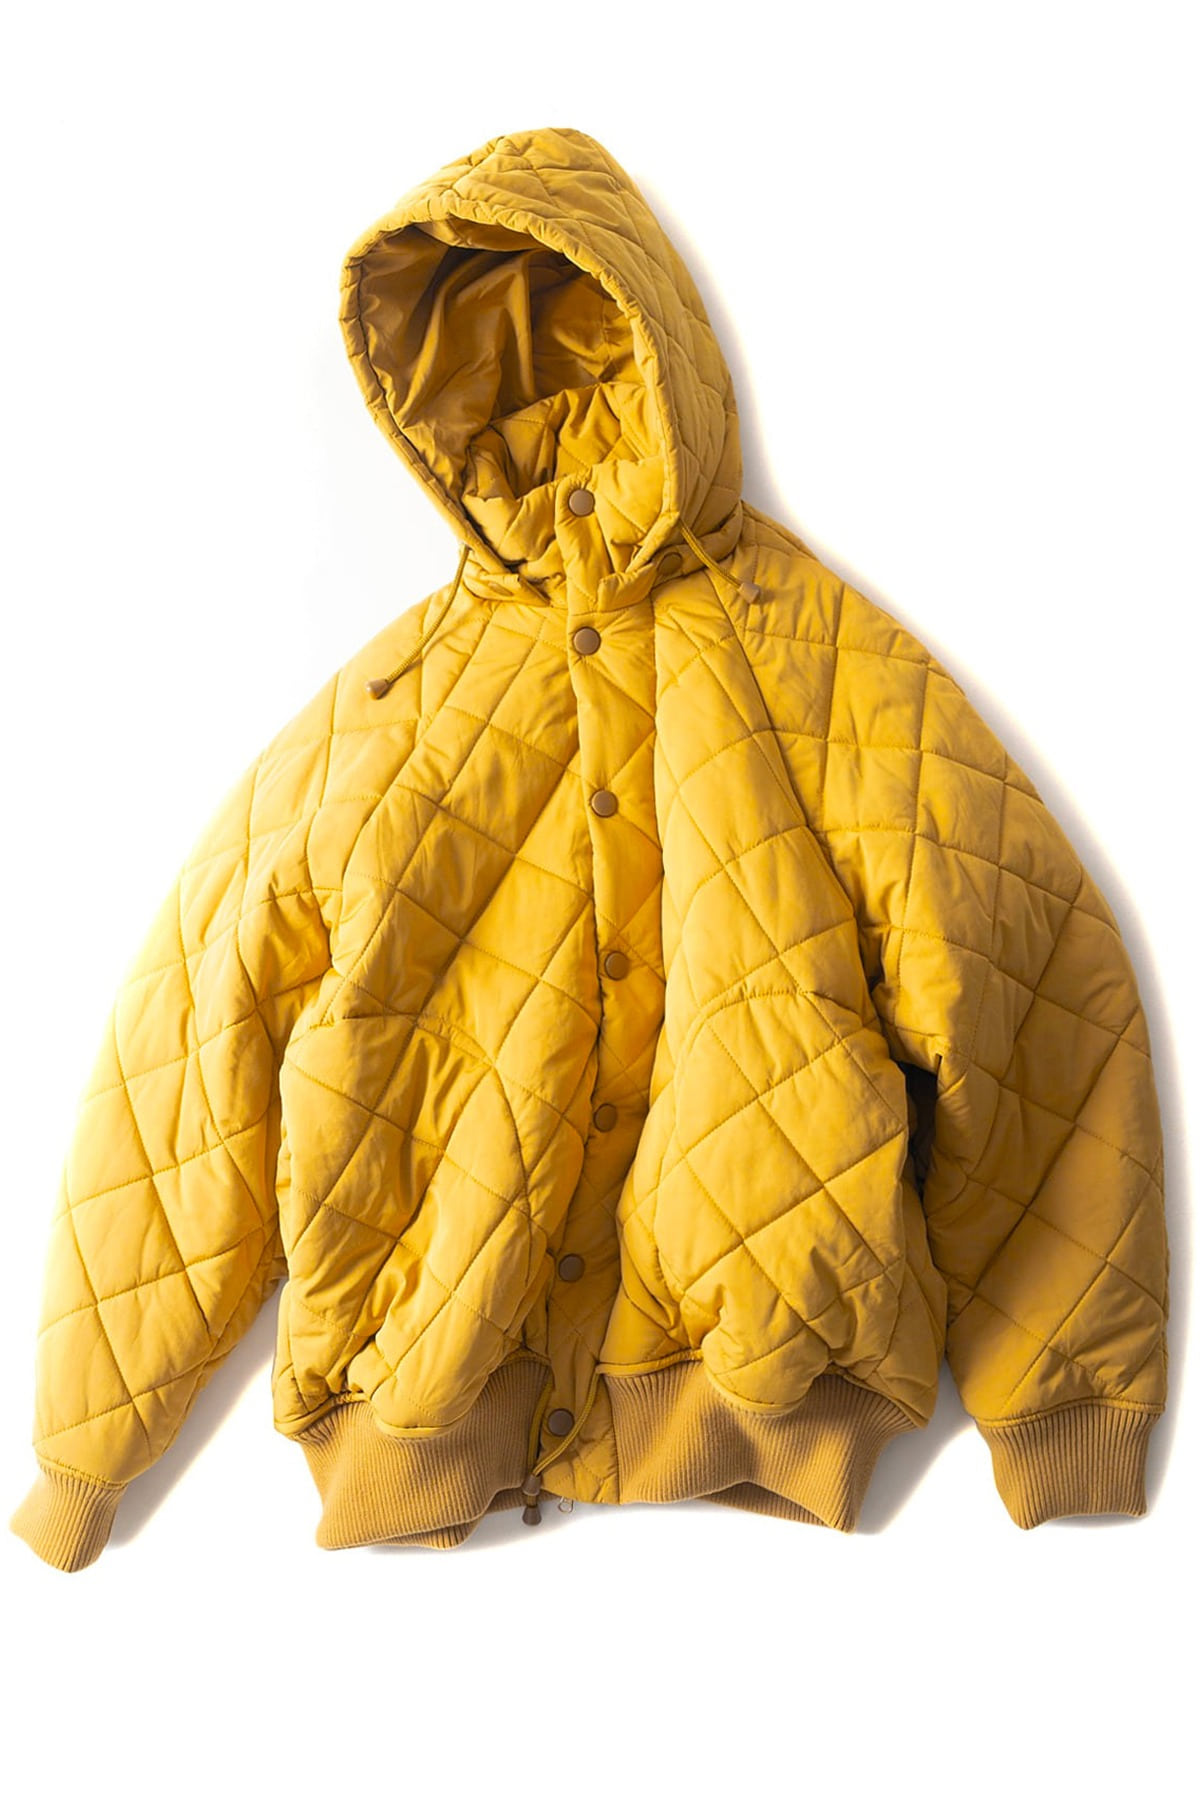 HENRIK VIBSKOV : Therefore Thermo Jacket (Yellow)